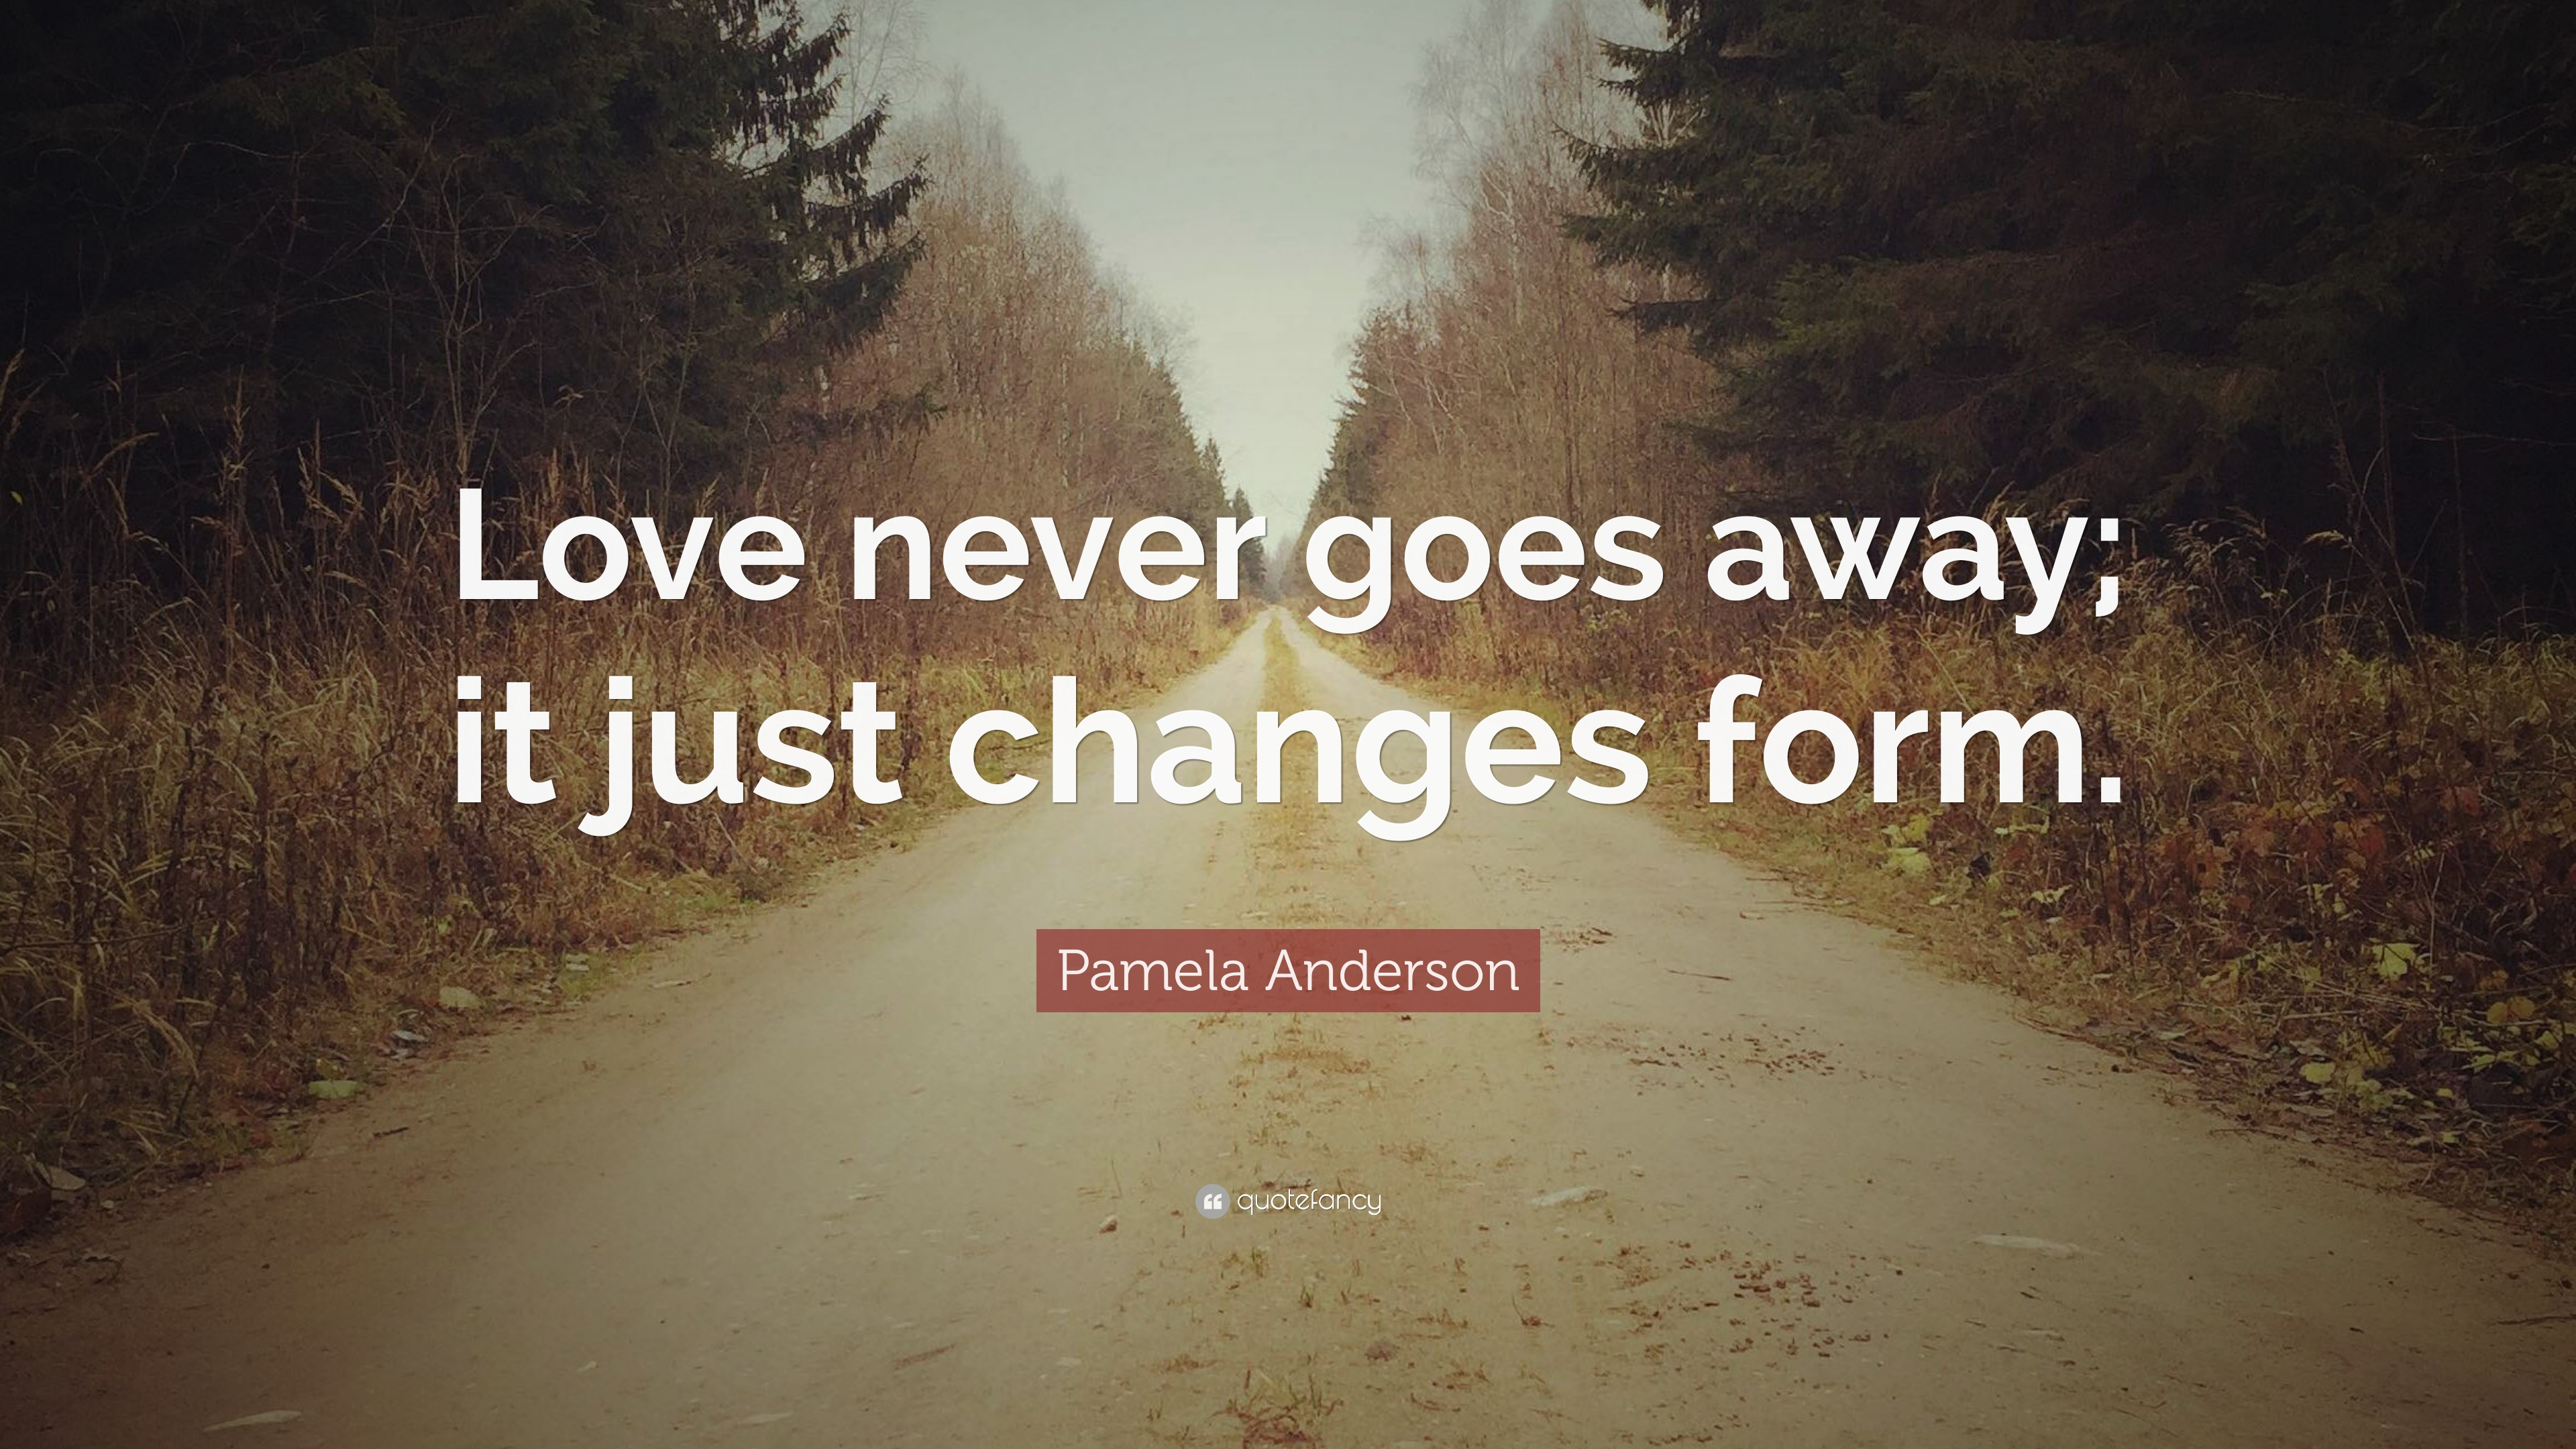 "Pamela Anderson Quote ""Love never goes away it just changes form """